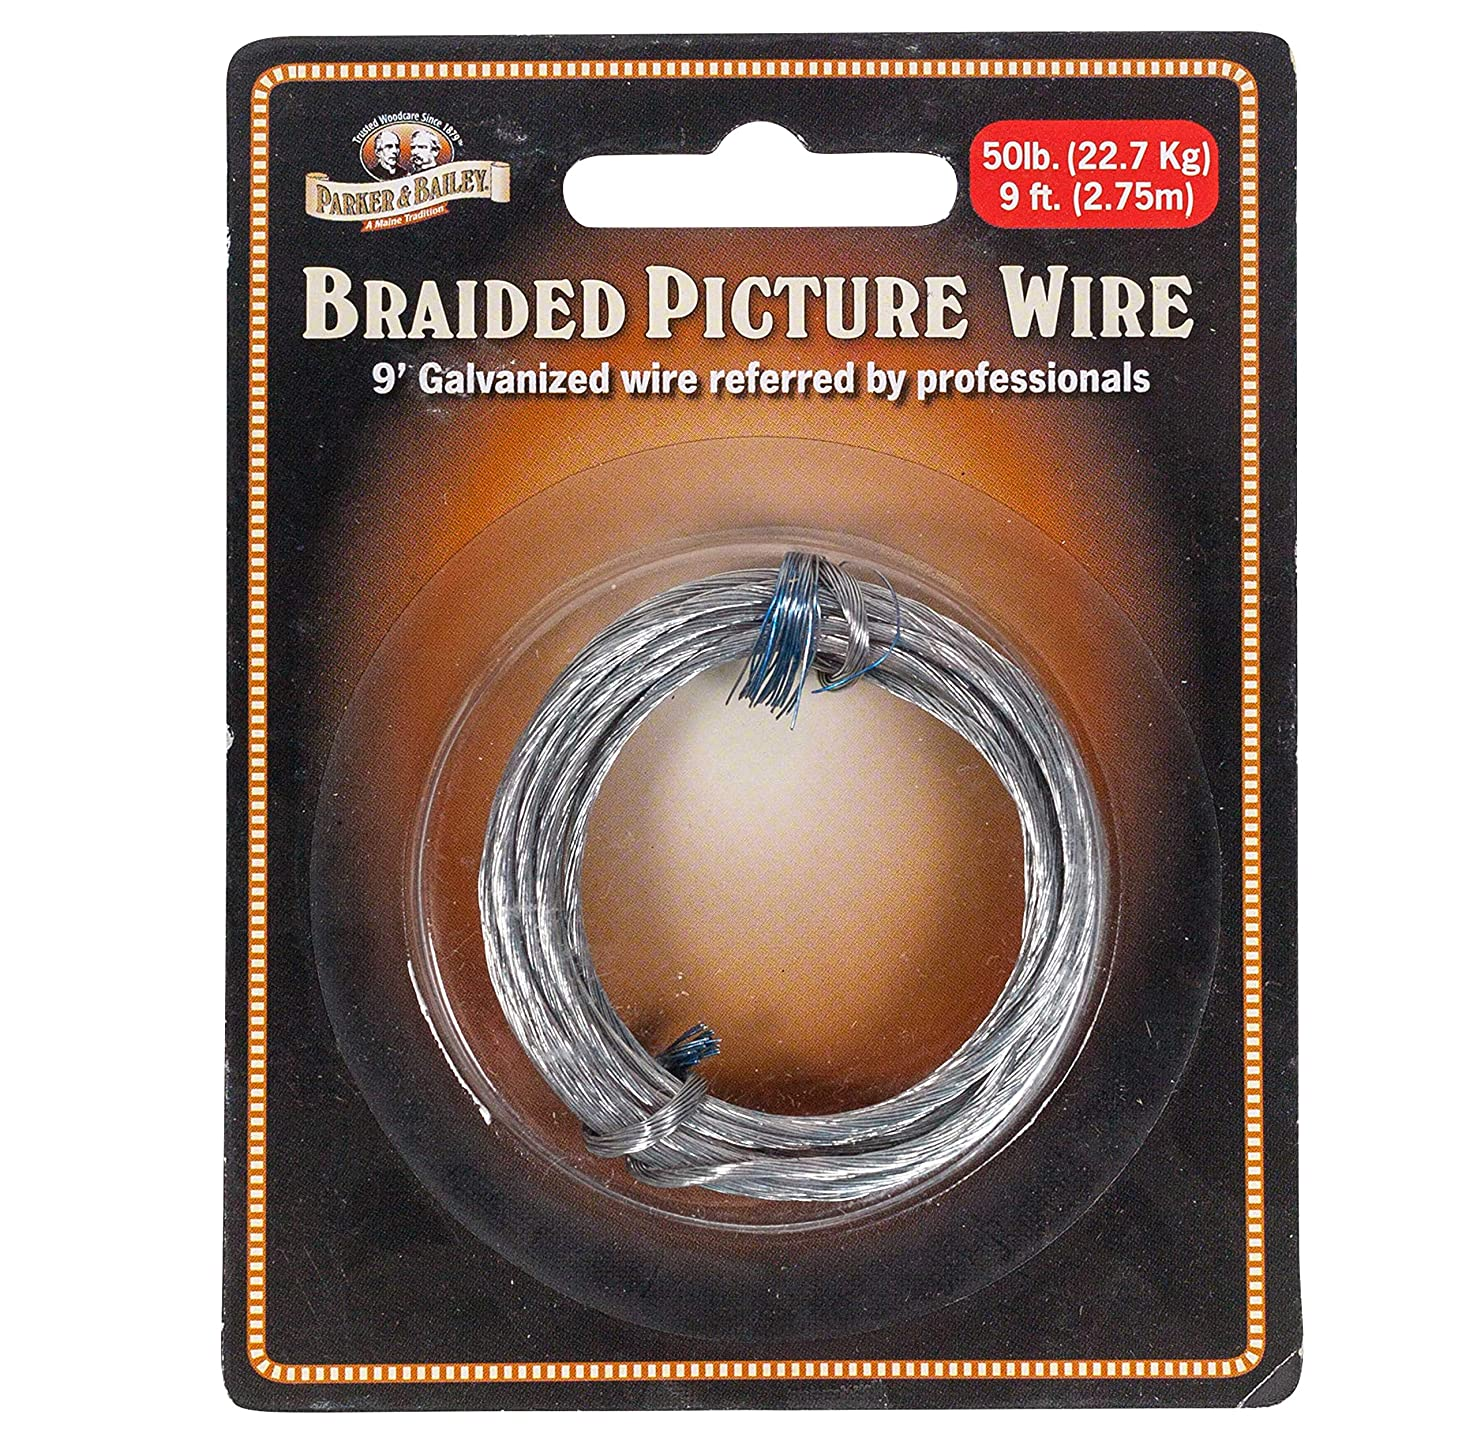 Parker & Bailey 9 Foot Galvanized Braided Picture Wire, 50 Pound Weight Limit - 1 Pack